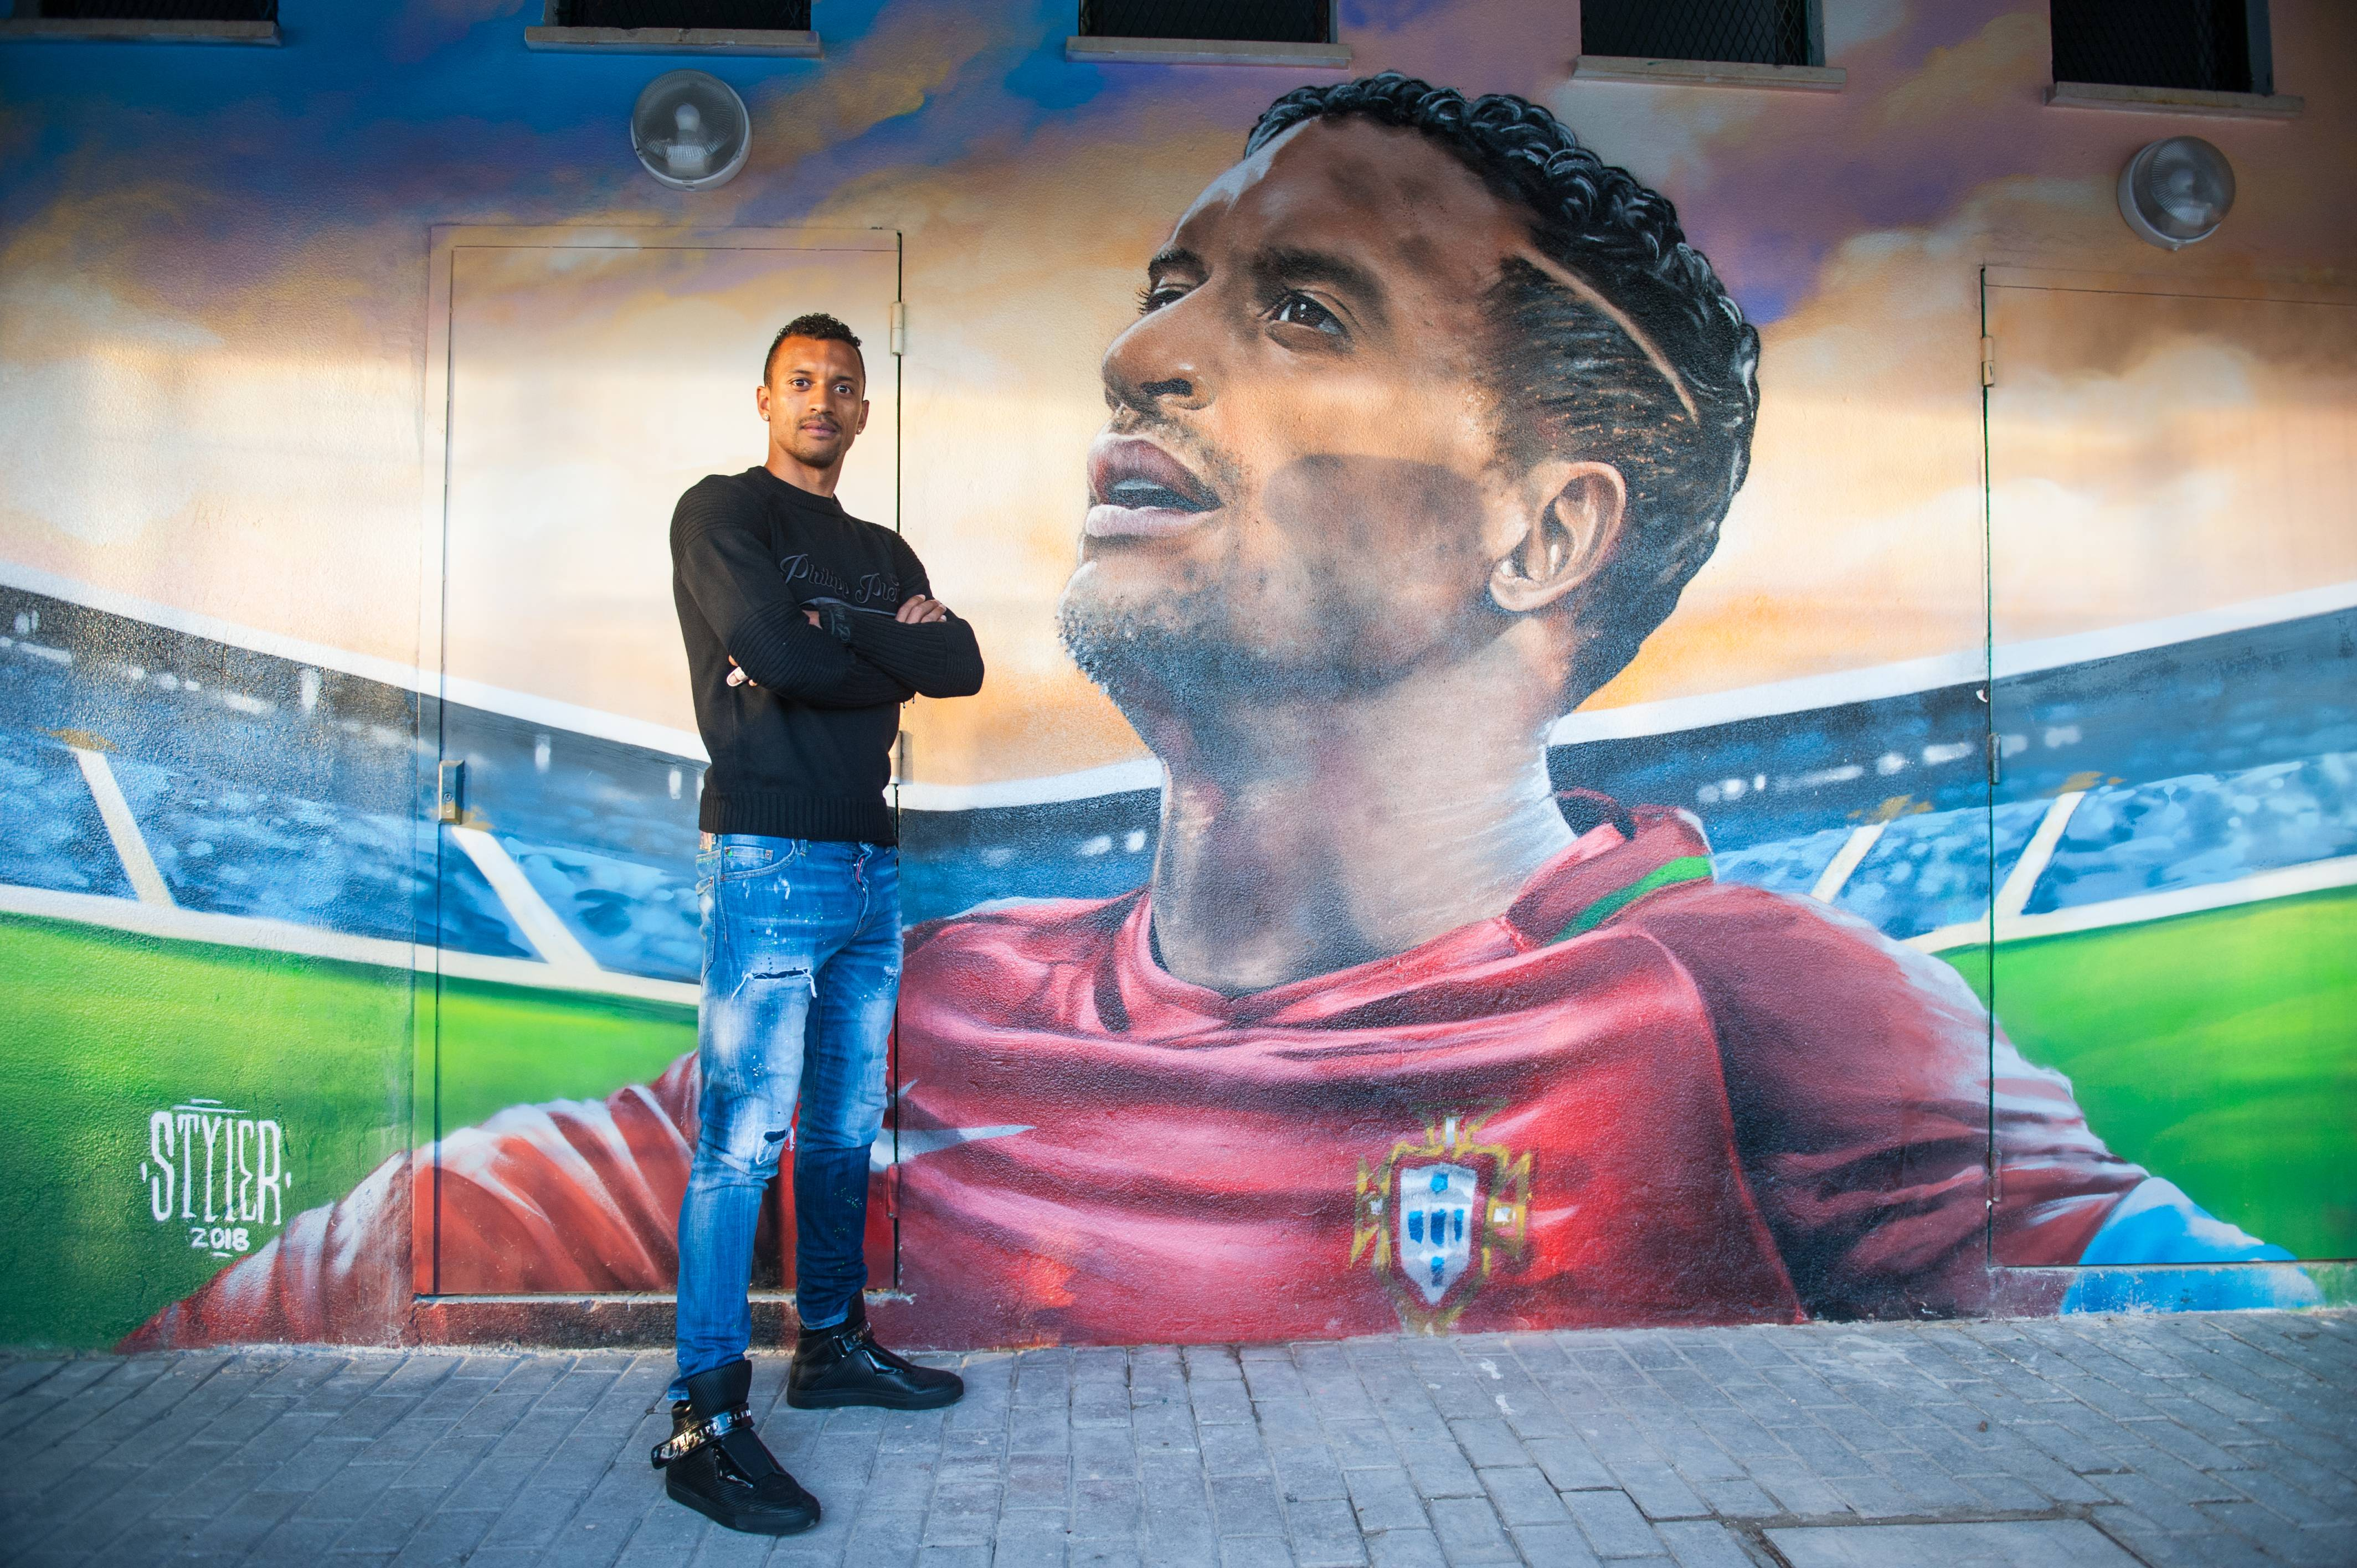 Portuguese football superstar Nani will judge Red Bull Street Style in Miami